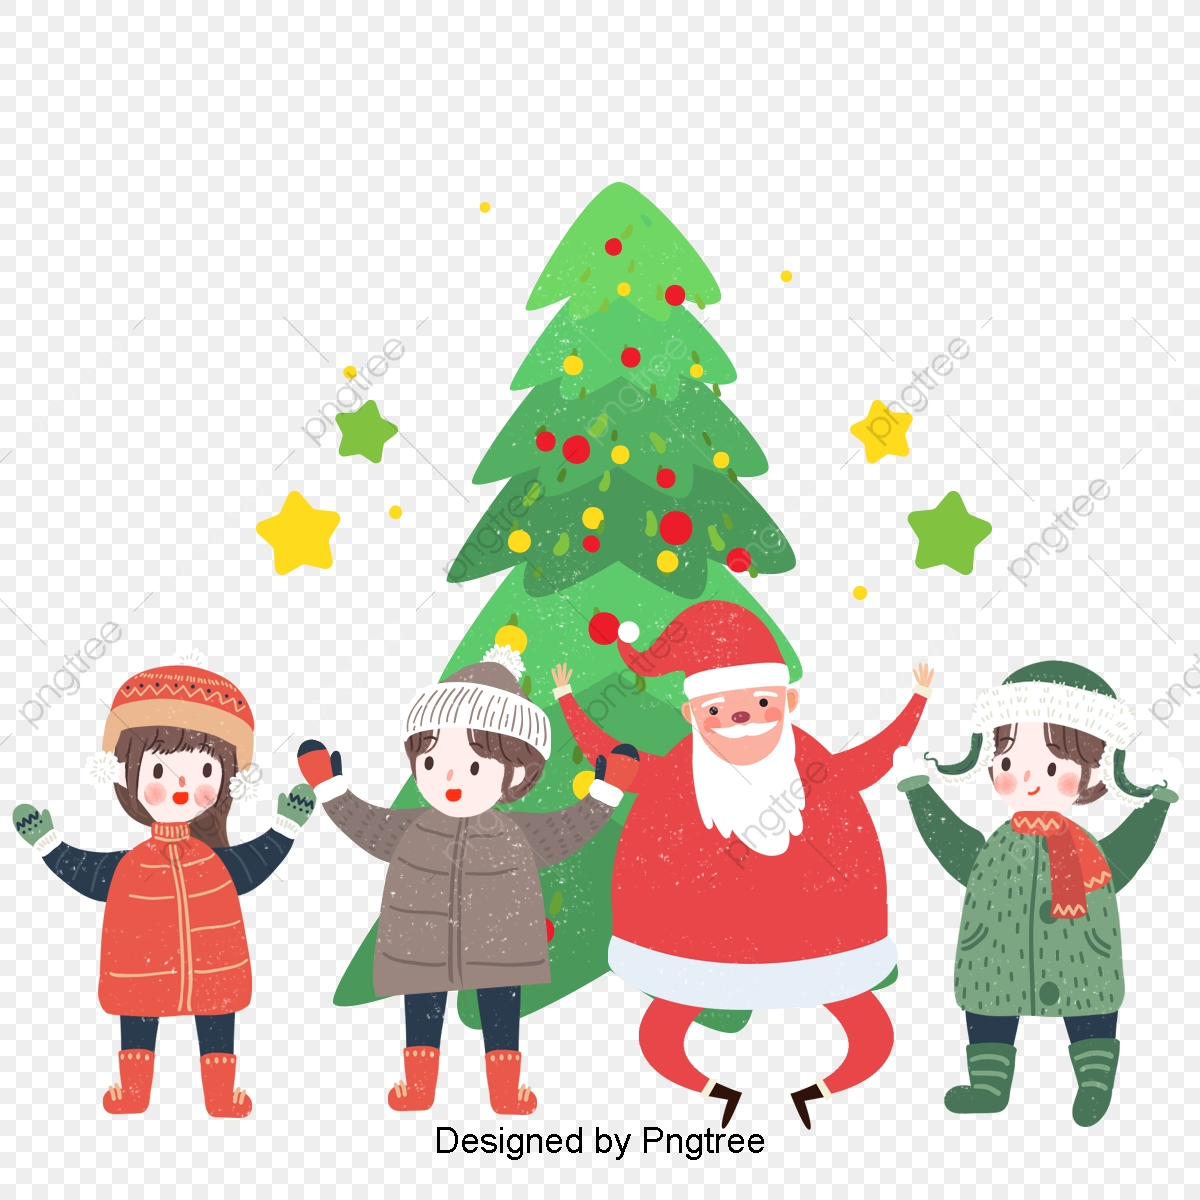 Christmas Illustrations.Santa Claus And Children Search Illustrations Christmas